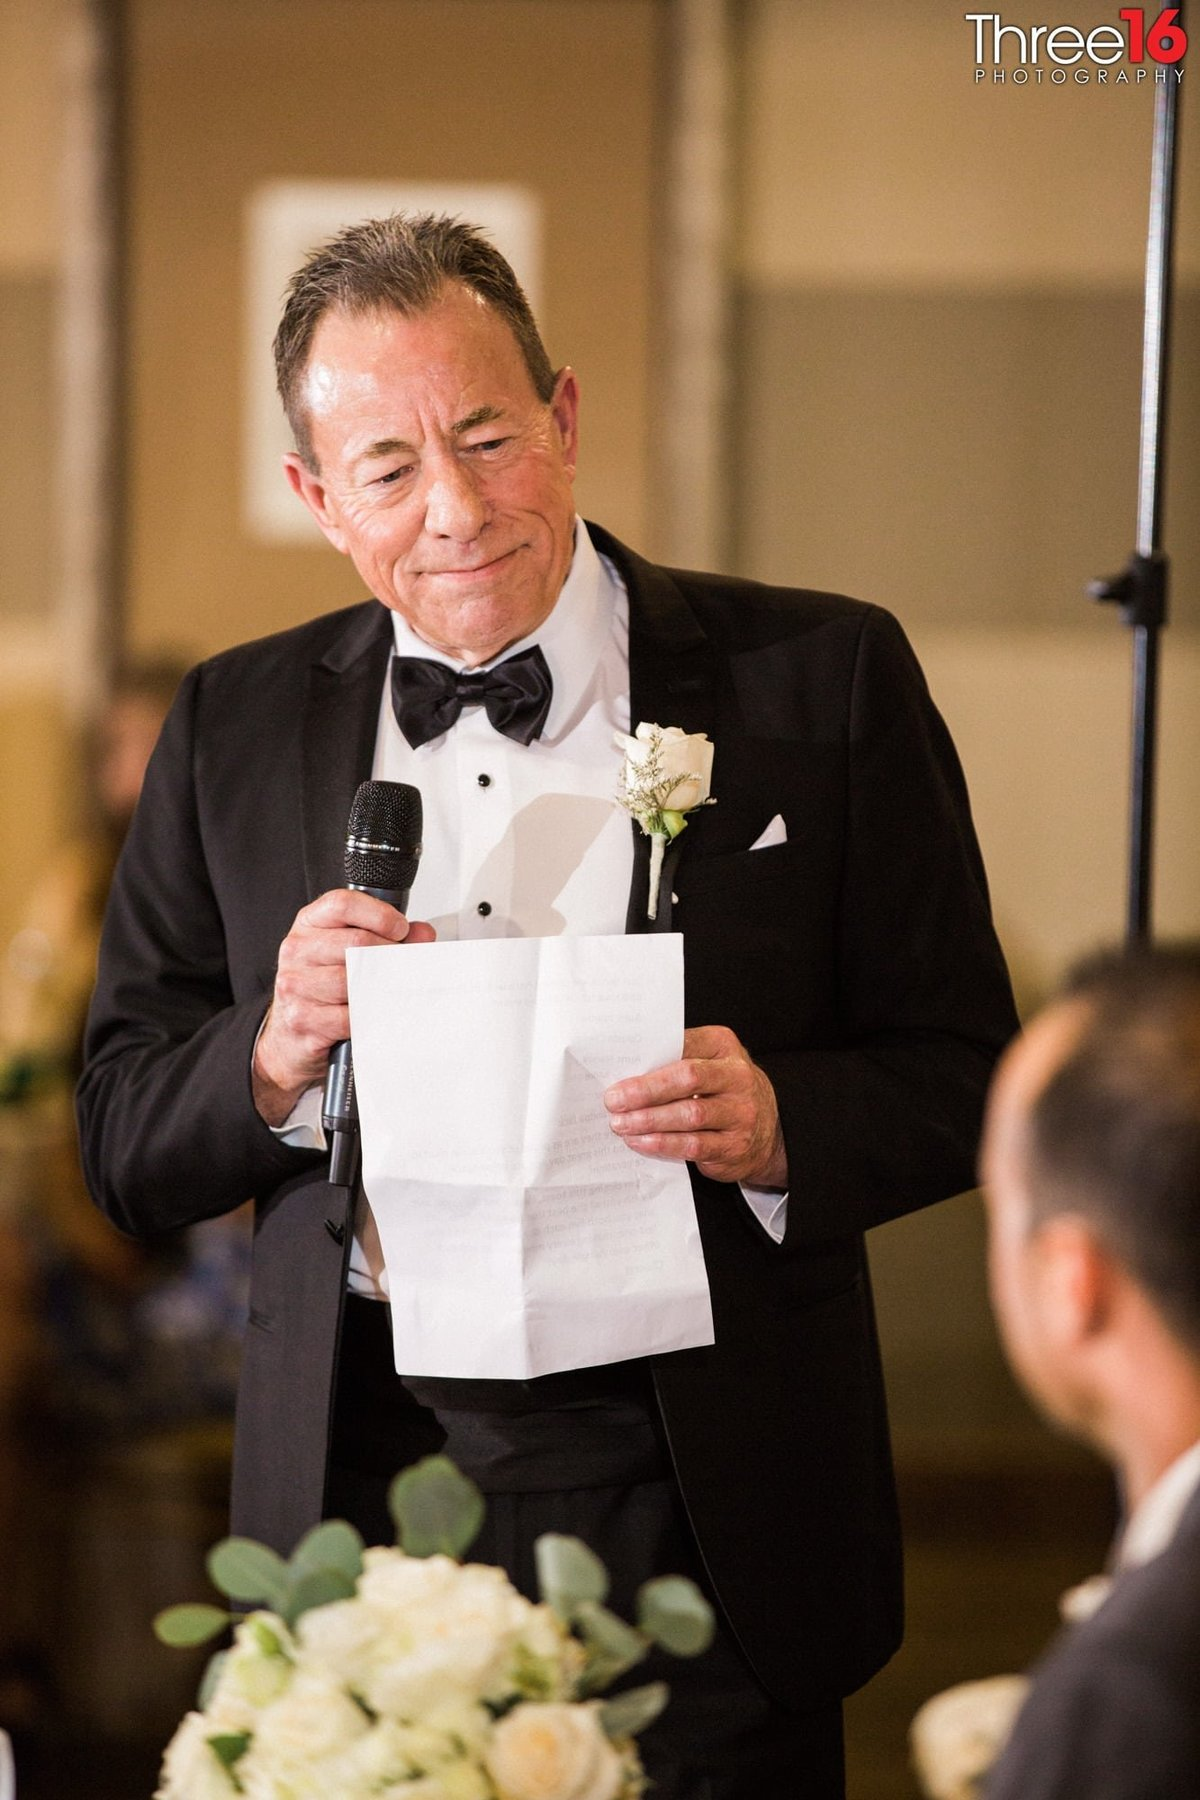 A special reading from dad at a wedding